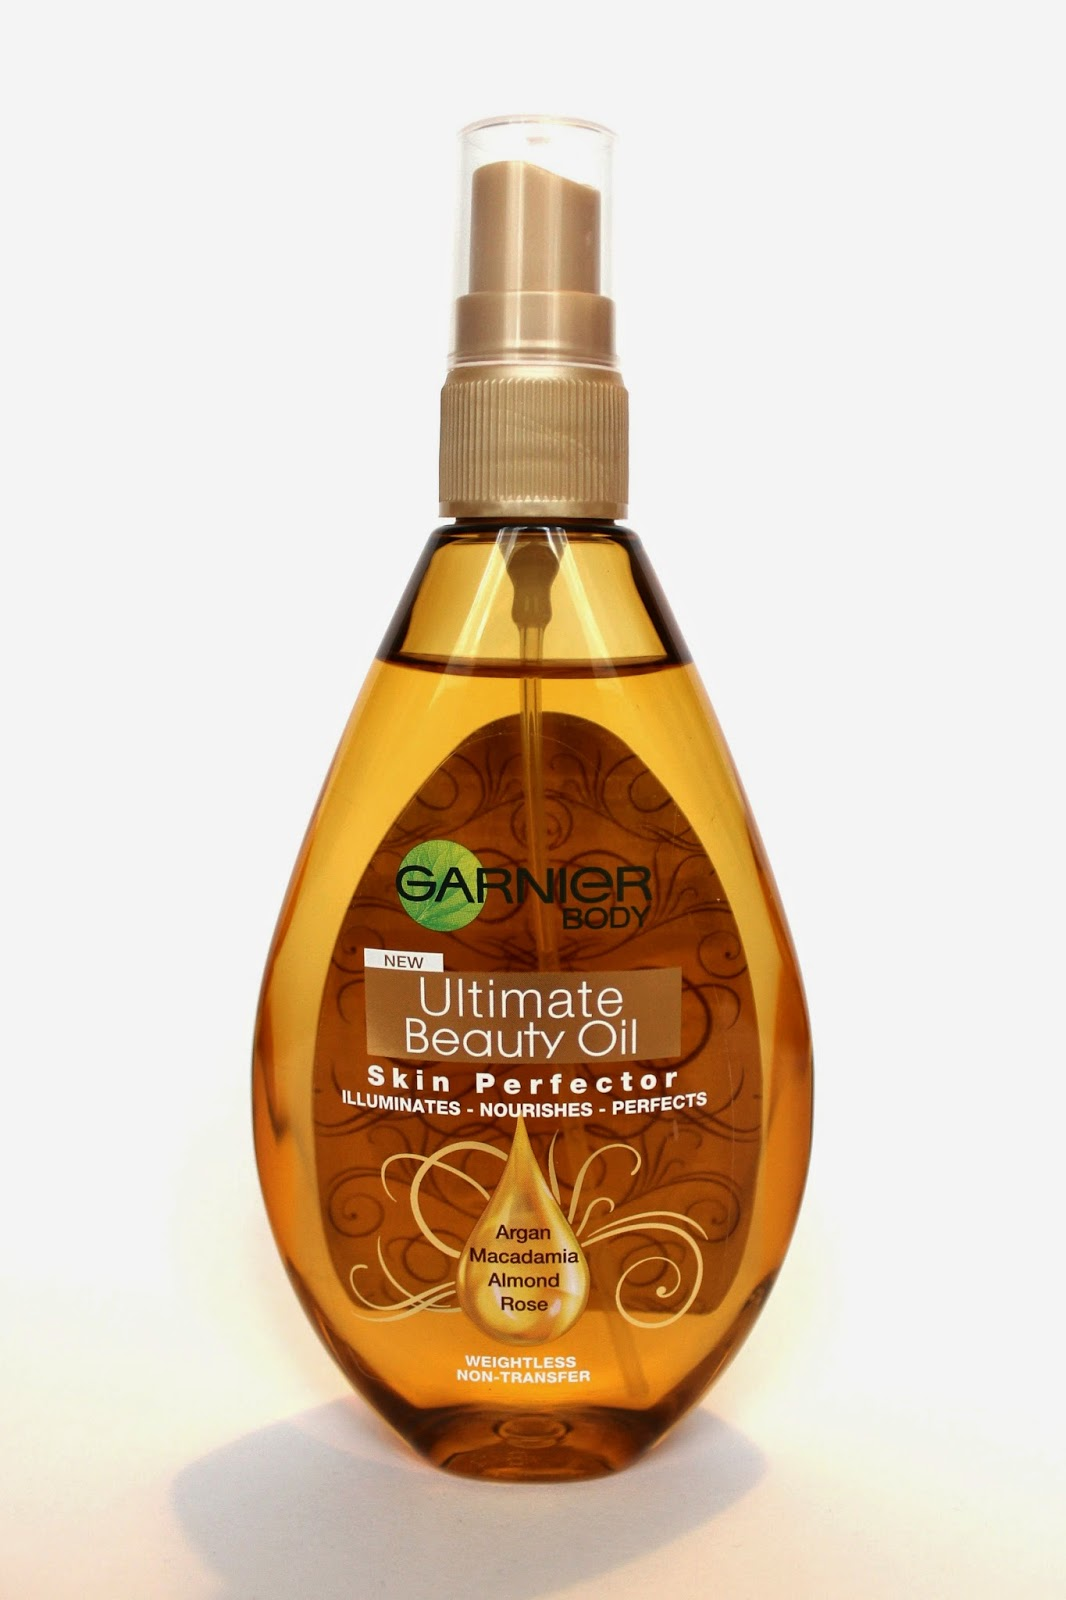 Bottle of body oil